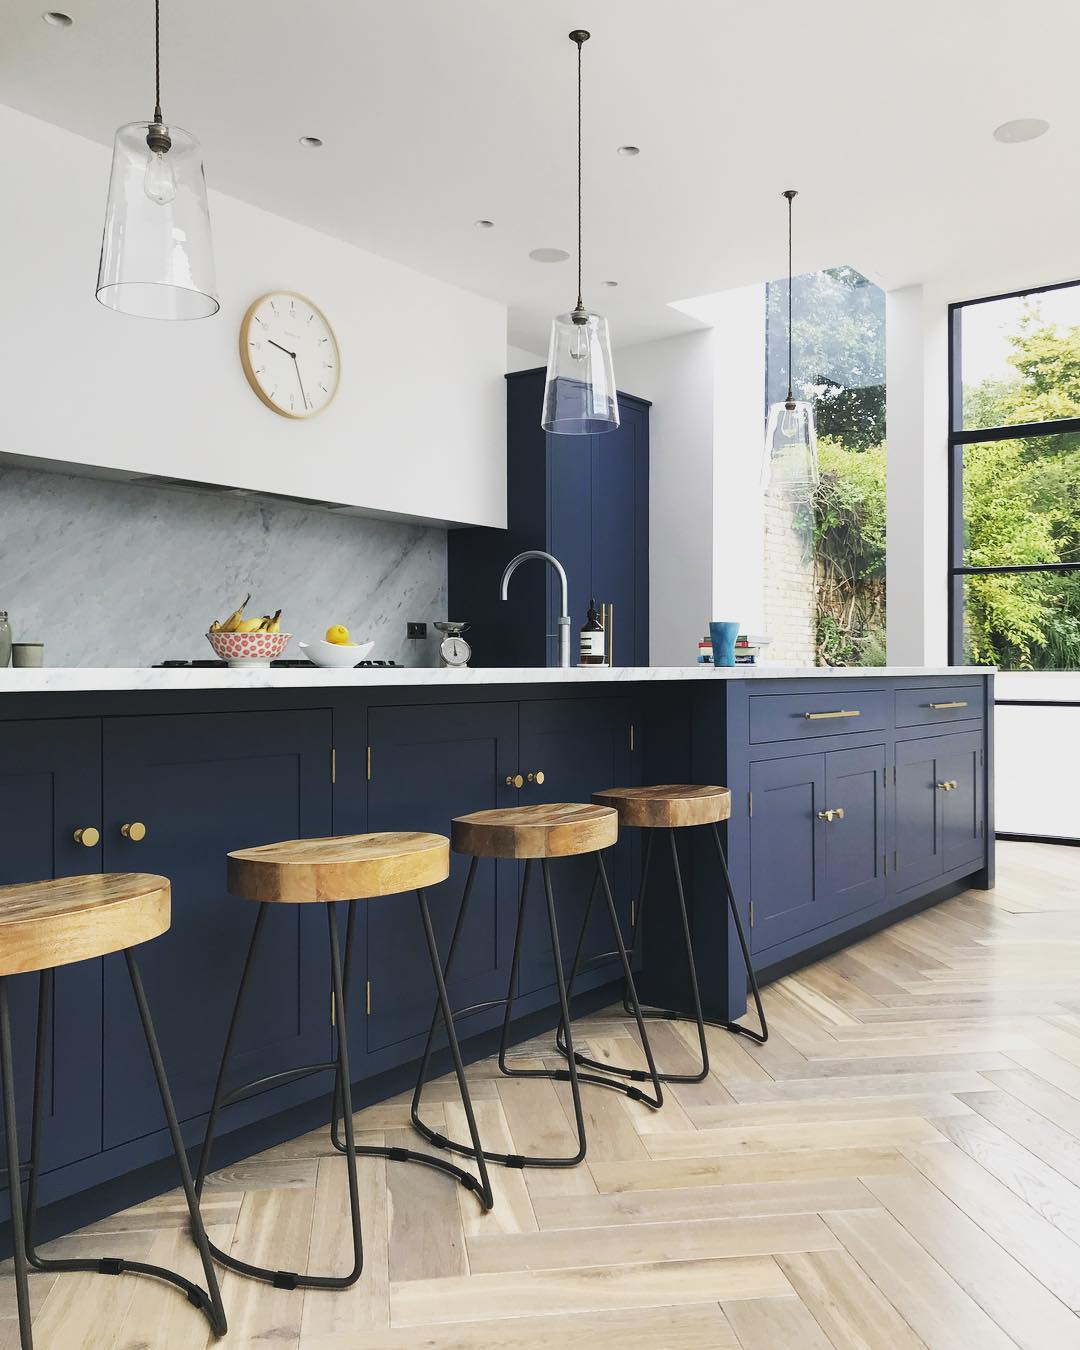 Blue Kitchen London: Navy, Marble And Brass Kitchen Decor